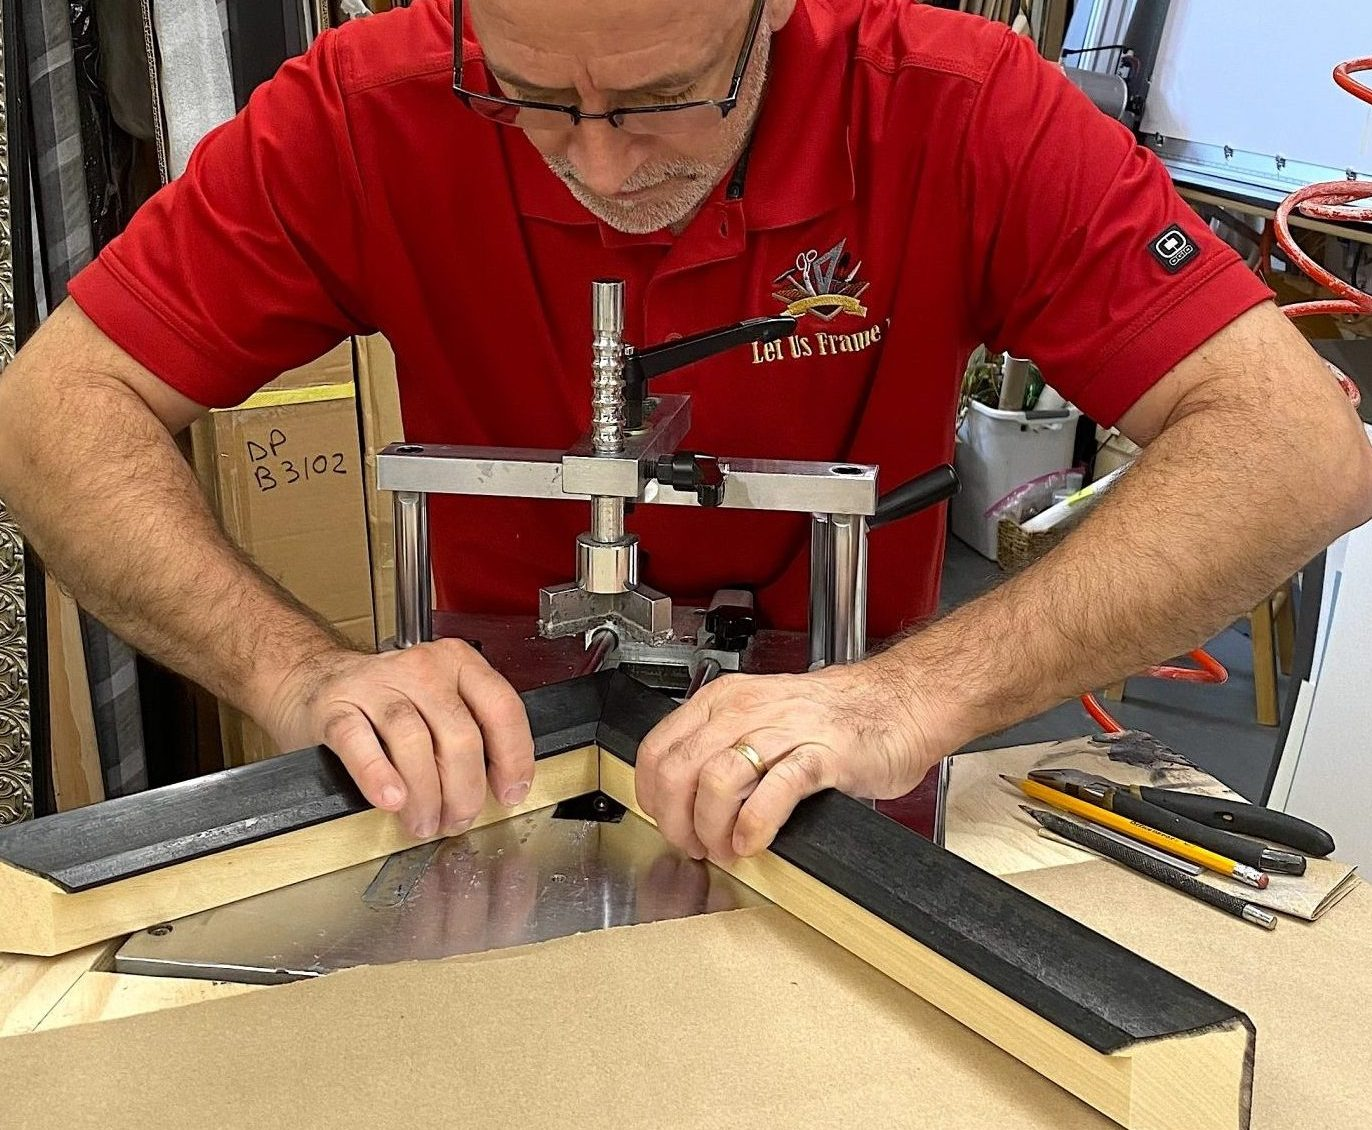 Image shows a corner of a custom frame being assembled using the underpinner machine.